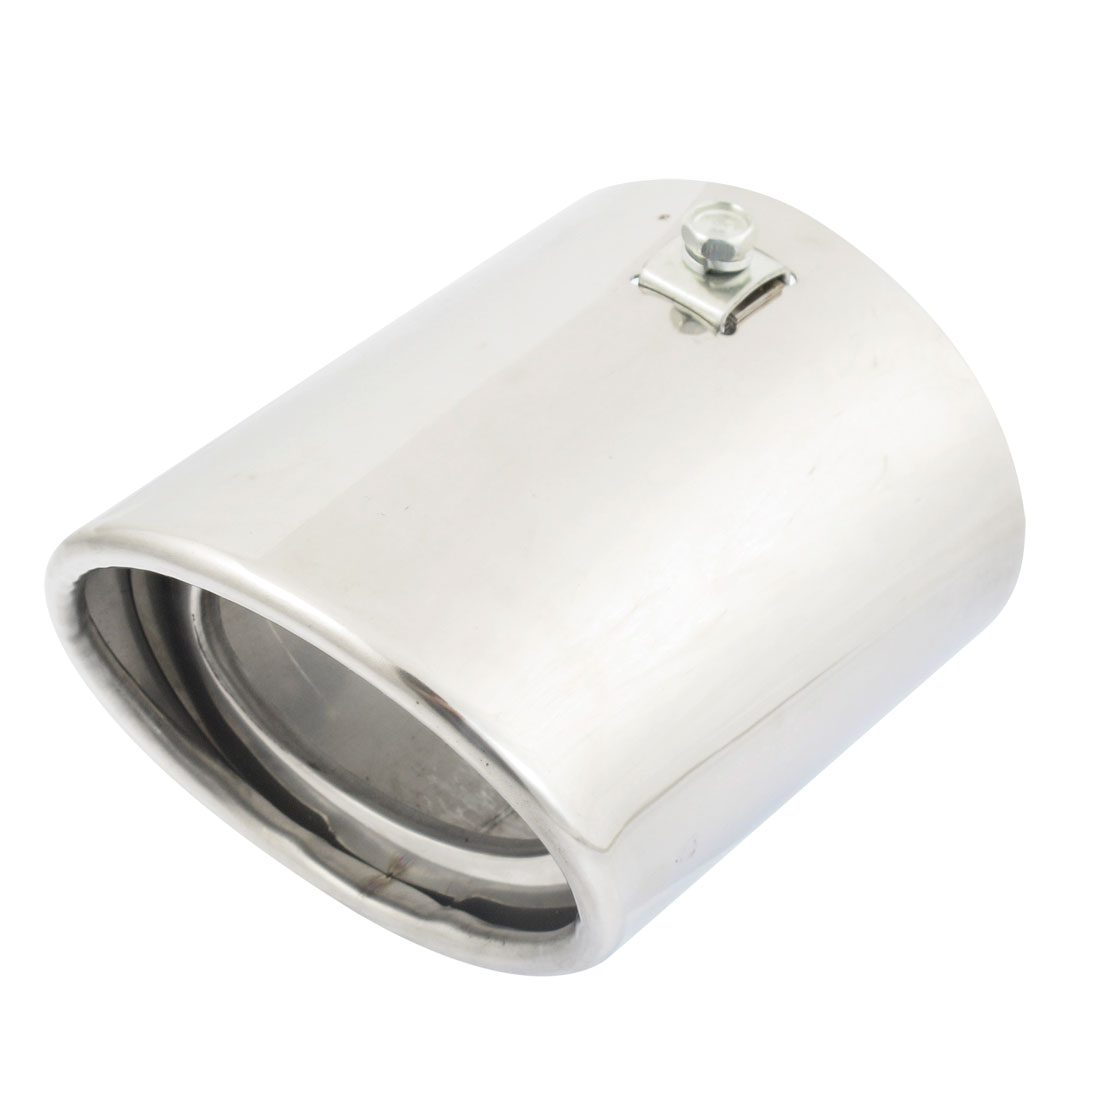 Oval Shaped Stainless Auto Car Exhaust Pipe Silencer Muffler Tip